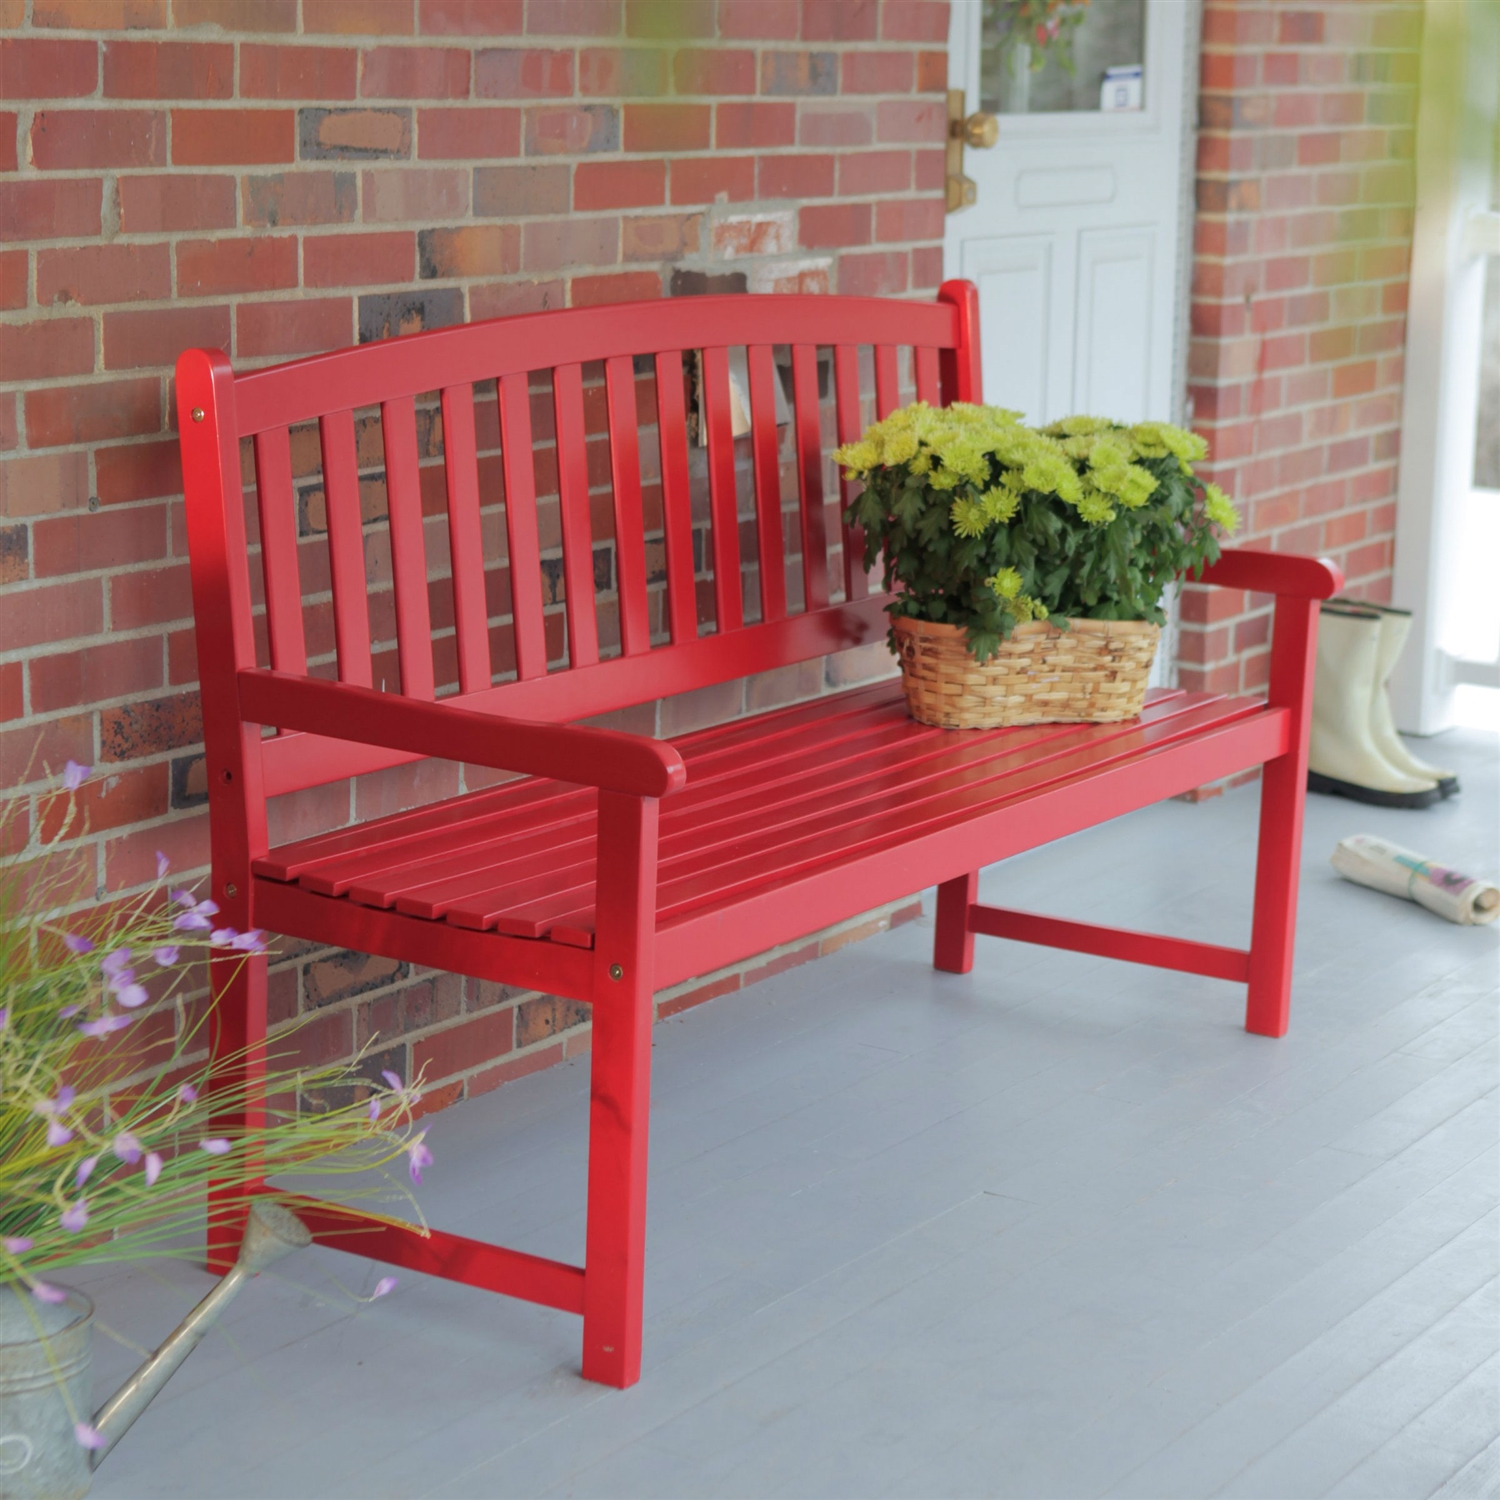 Cool 5 Ft Outdoor Garden Bench In Red Wood Finish With Armrest Squirreltailoven Fun Painted Chair Ideas Images Squirreltailovenorg